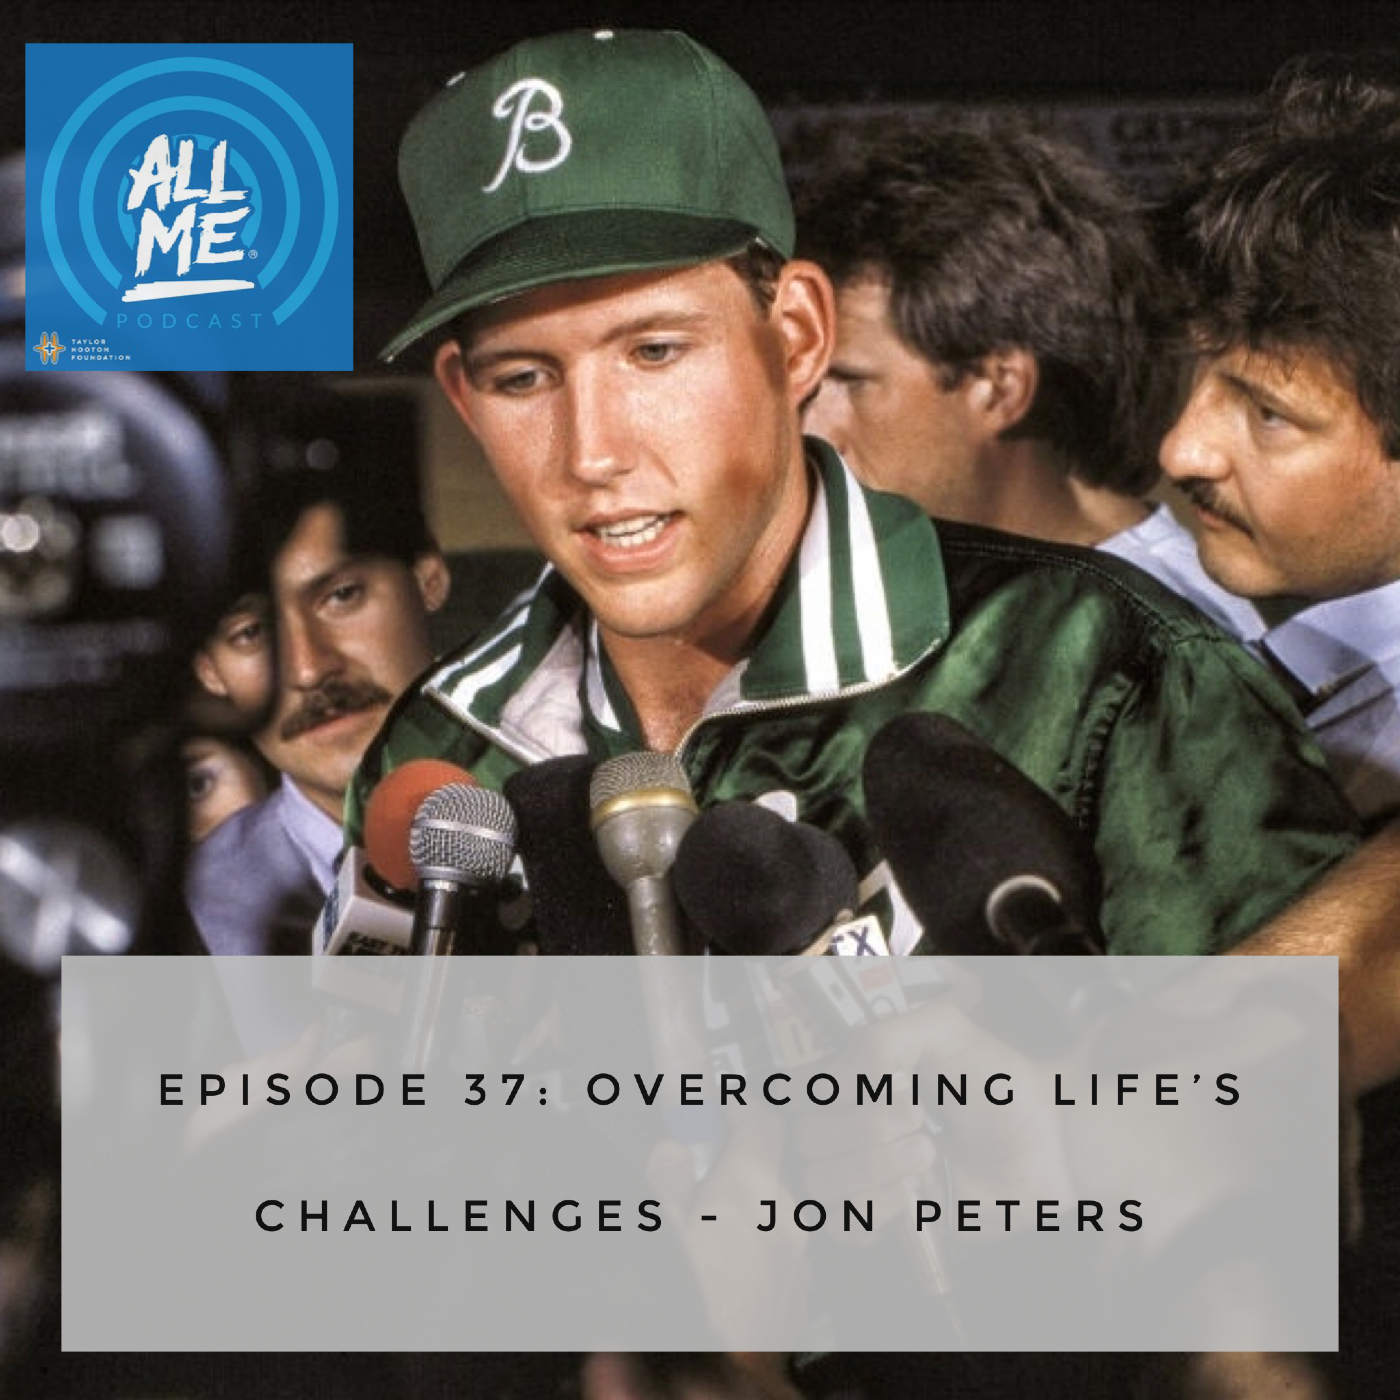 Episode 37: Overcoming Life's Challenges - Jon Peters